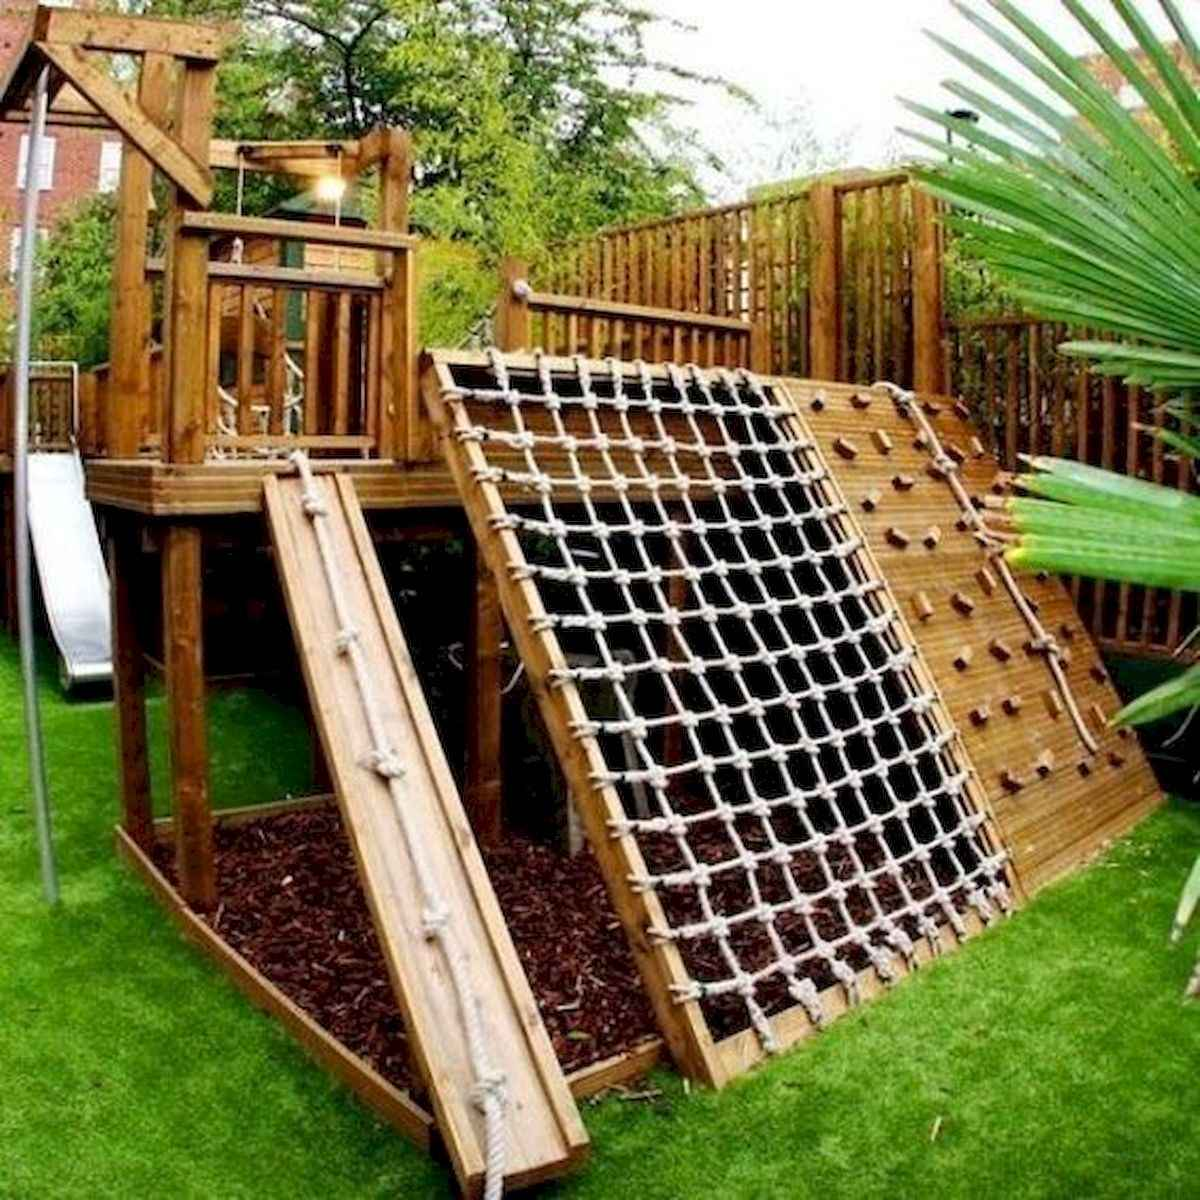 30 Fantastic Backyard Kids Ideas Play Spaces Design Ideas And Remodel (24)